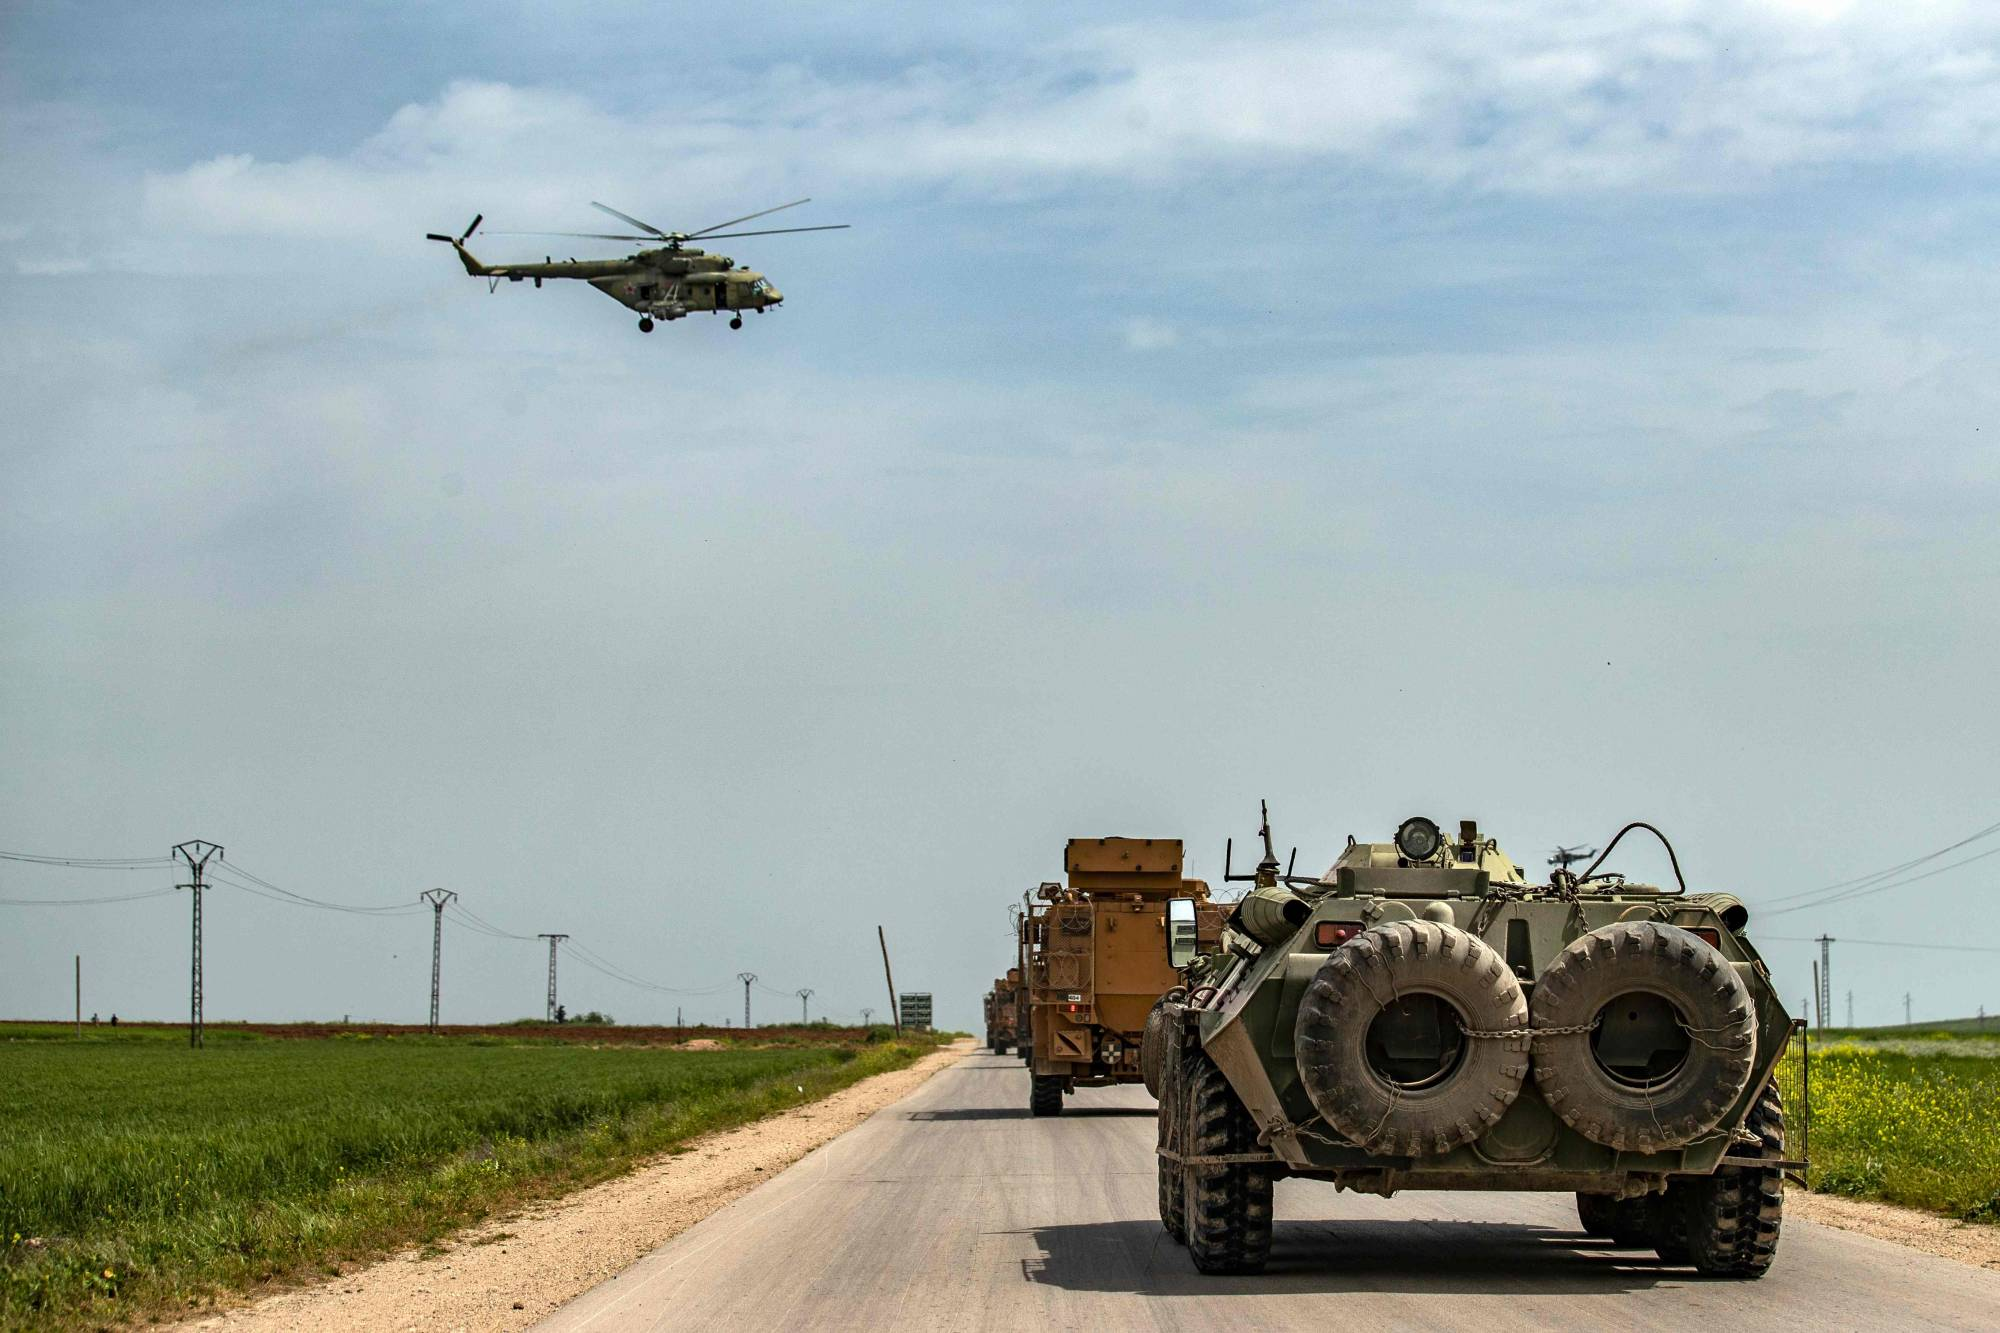 A Russian Air Force Mil Mi-28 military helicopter flies over Turkish and Russian military vehicles taking part in a joint Turkish-Russian patrol outside the Syrian town of Darbasiyah near the Turkish border in the province of Hasakah, on April 22. | AFP-JIJI